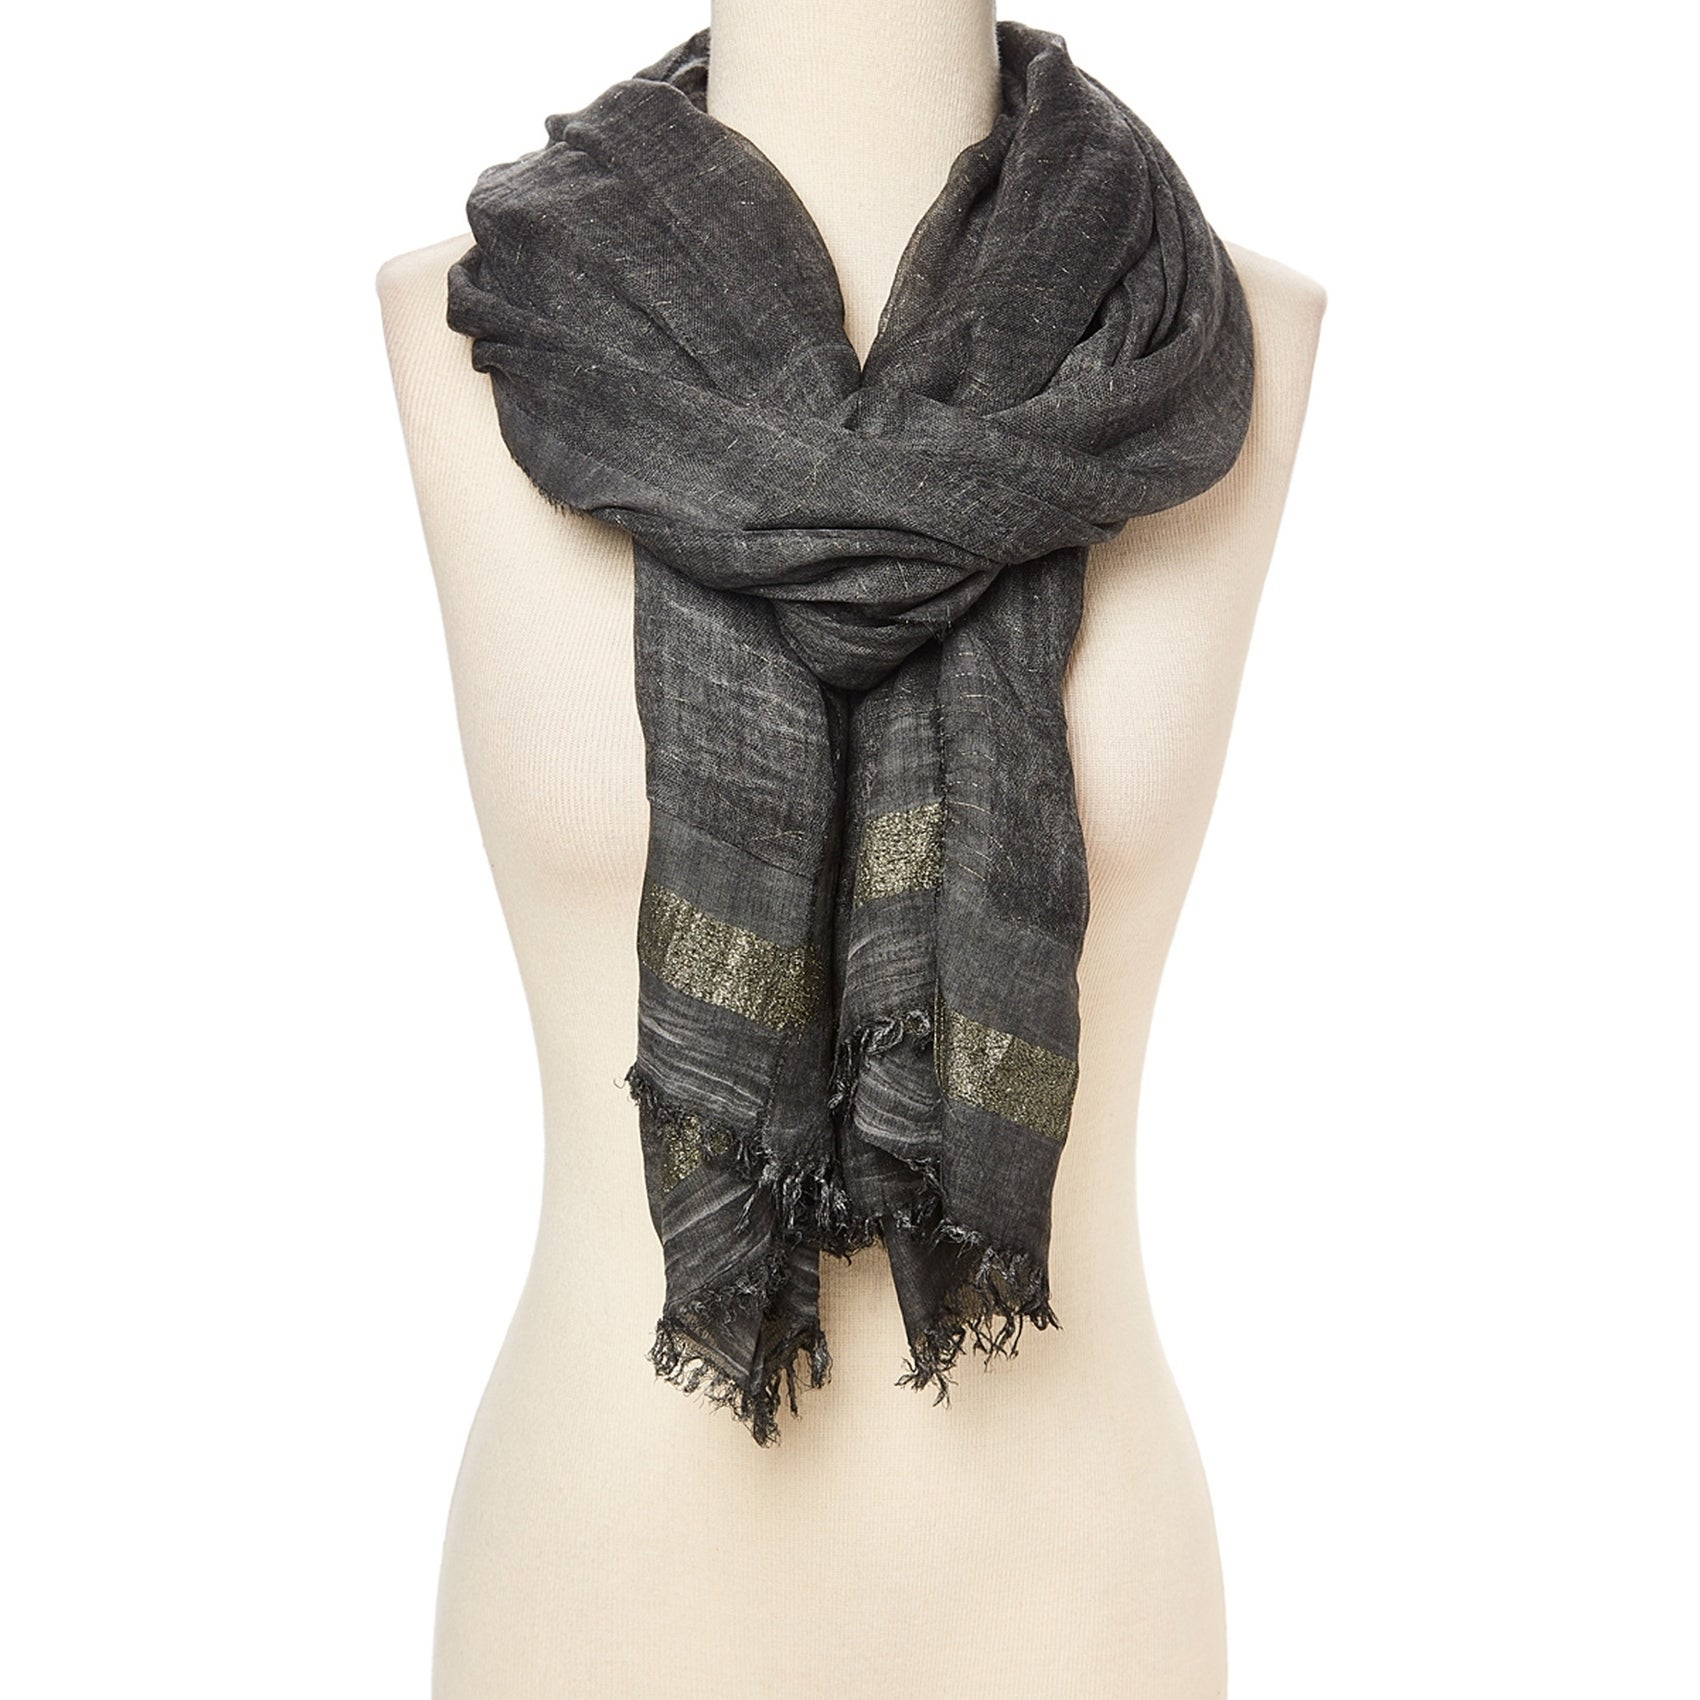 6b8b9f7ab5e Shop Grey Scarf for Women Scarf Fringe Hem Viscose Lightweight Fashionable  Women s Scarves Shawl Wrap - 32